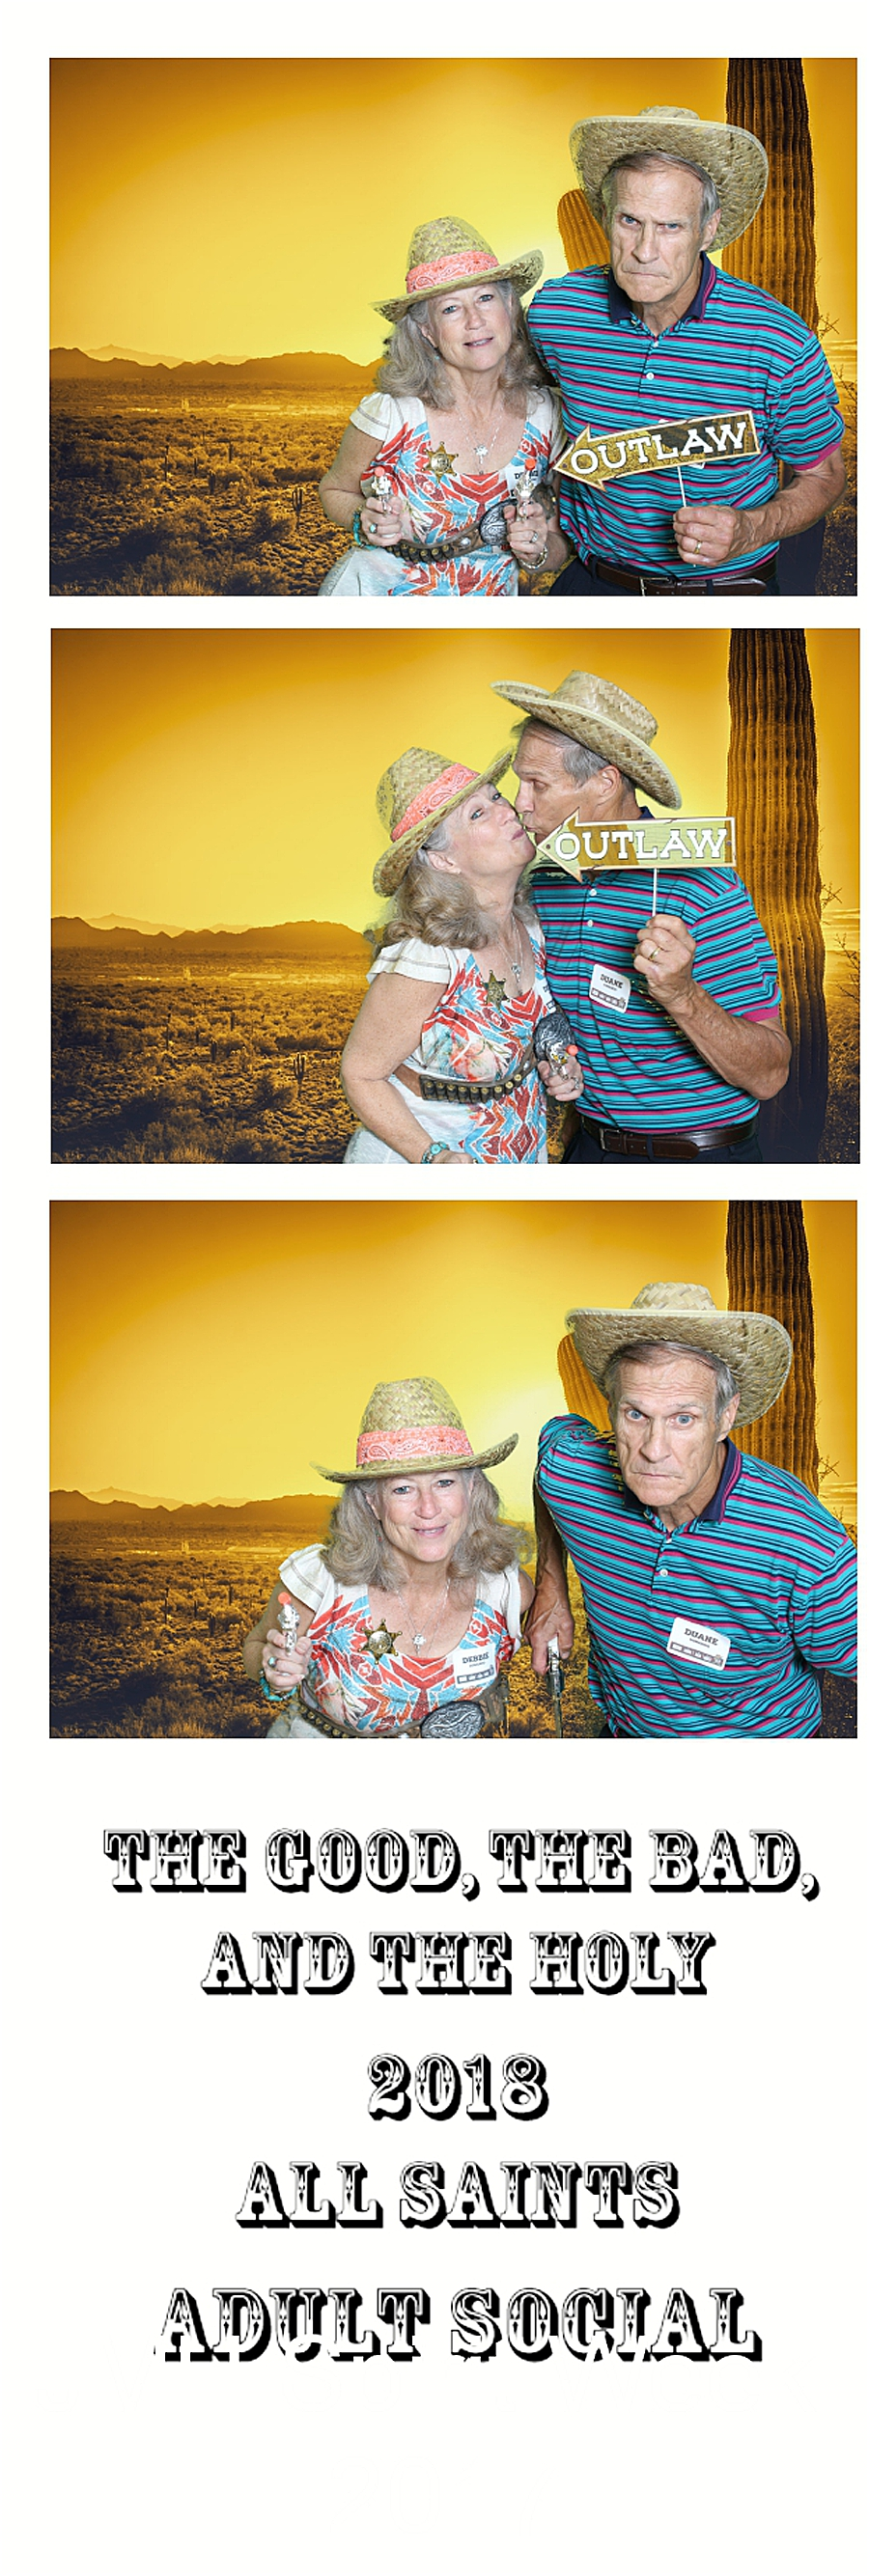 Knoxville Photo Booth_1353.jpg